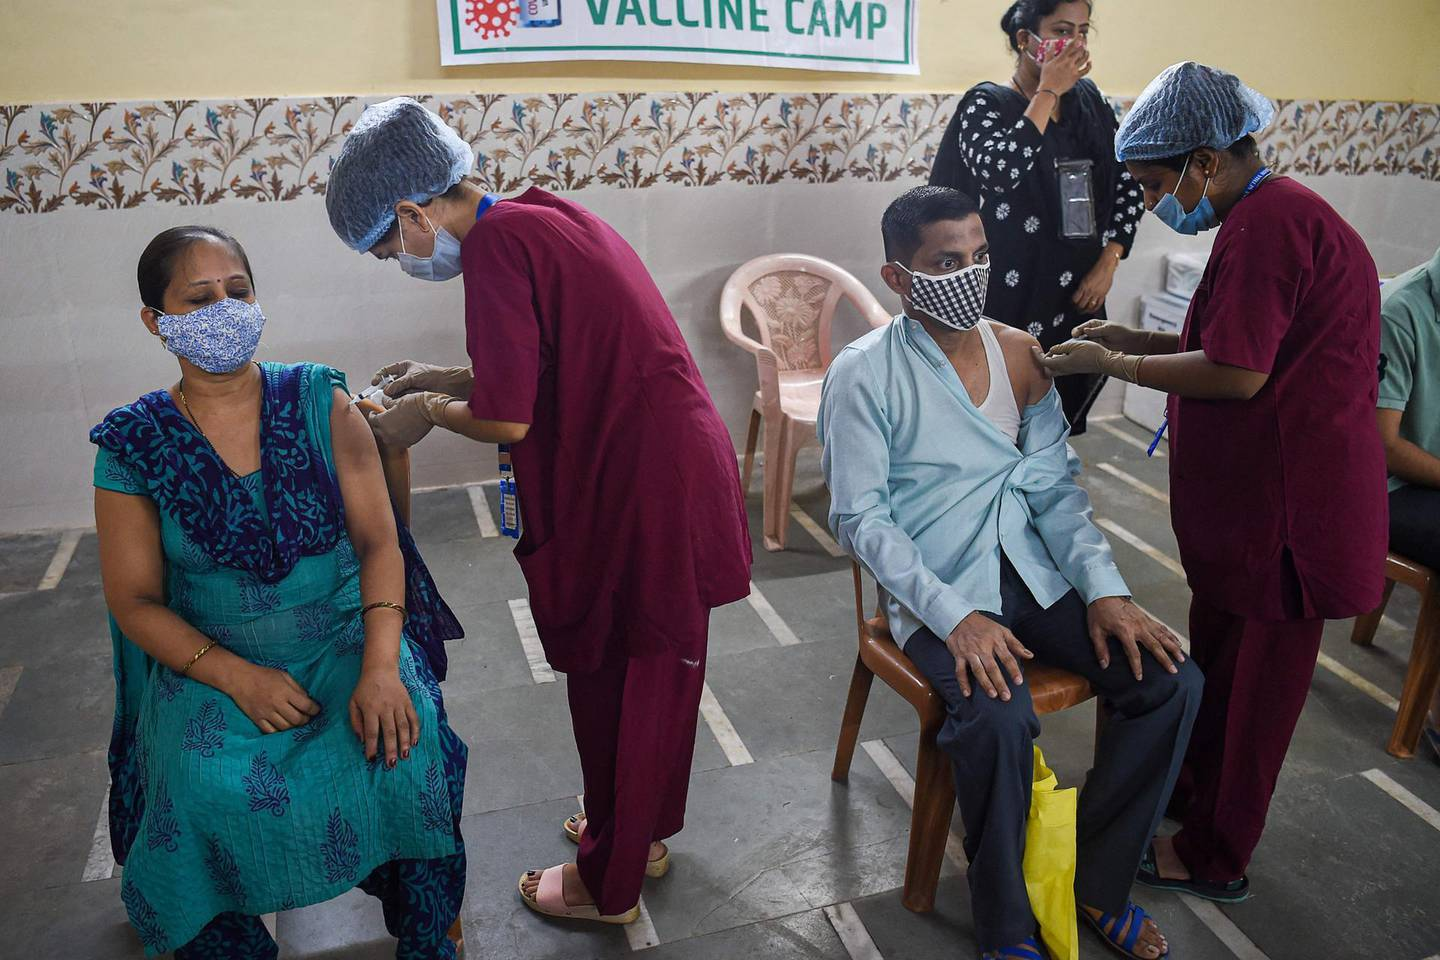 Residents get inoculated with a dose of the Covishield, AstraZeneca-Oxford's Covid-19 coronavirus vaccine, at a vaccination centre in the Dharavi slums in Mumbai on June 29, 2021. / AFP / Punit PARANJPE